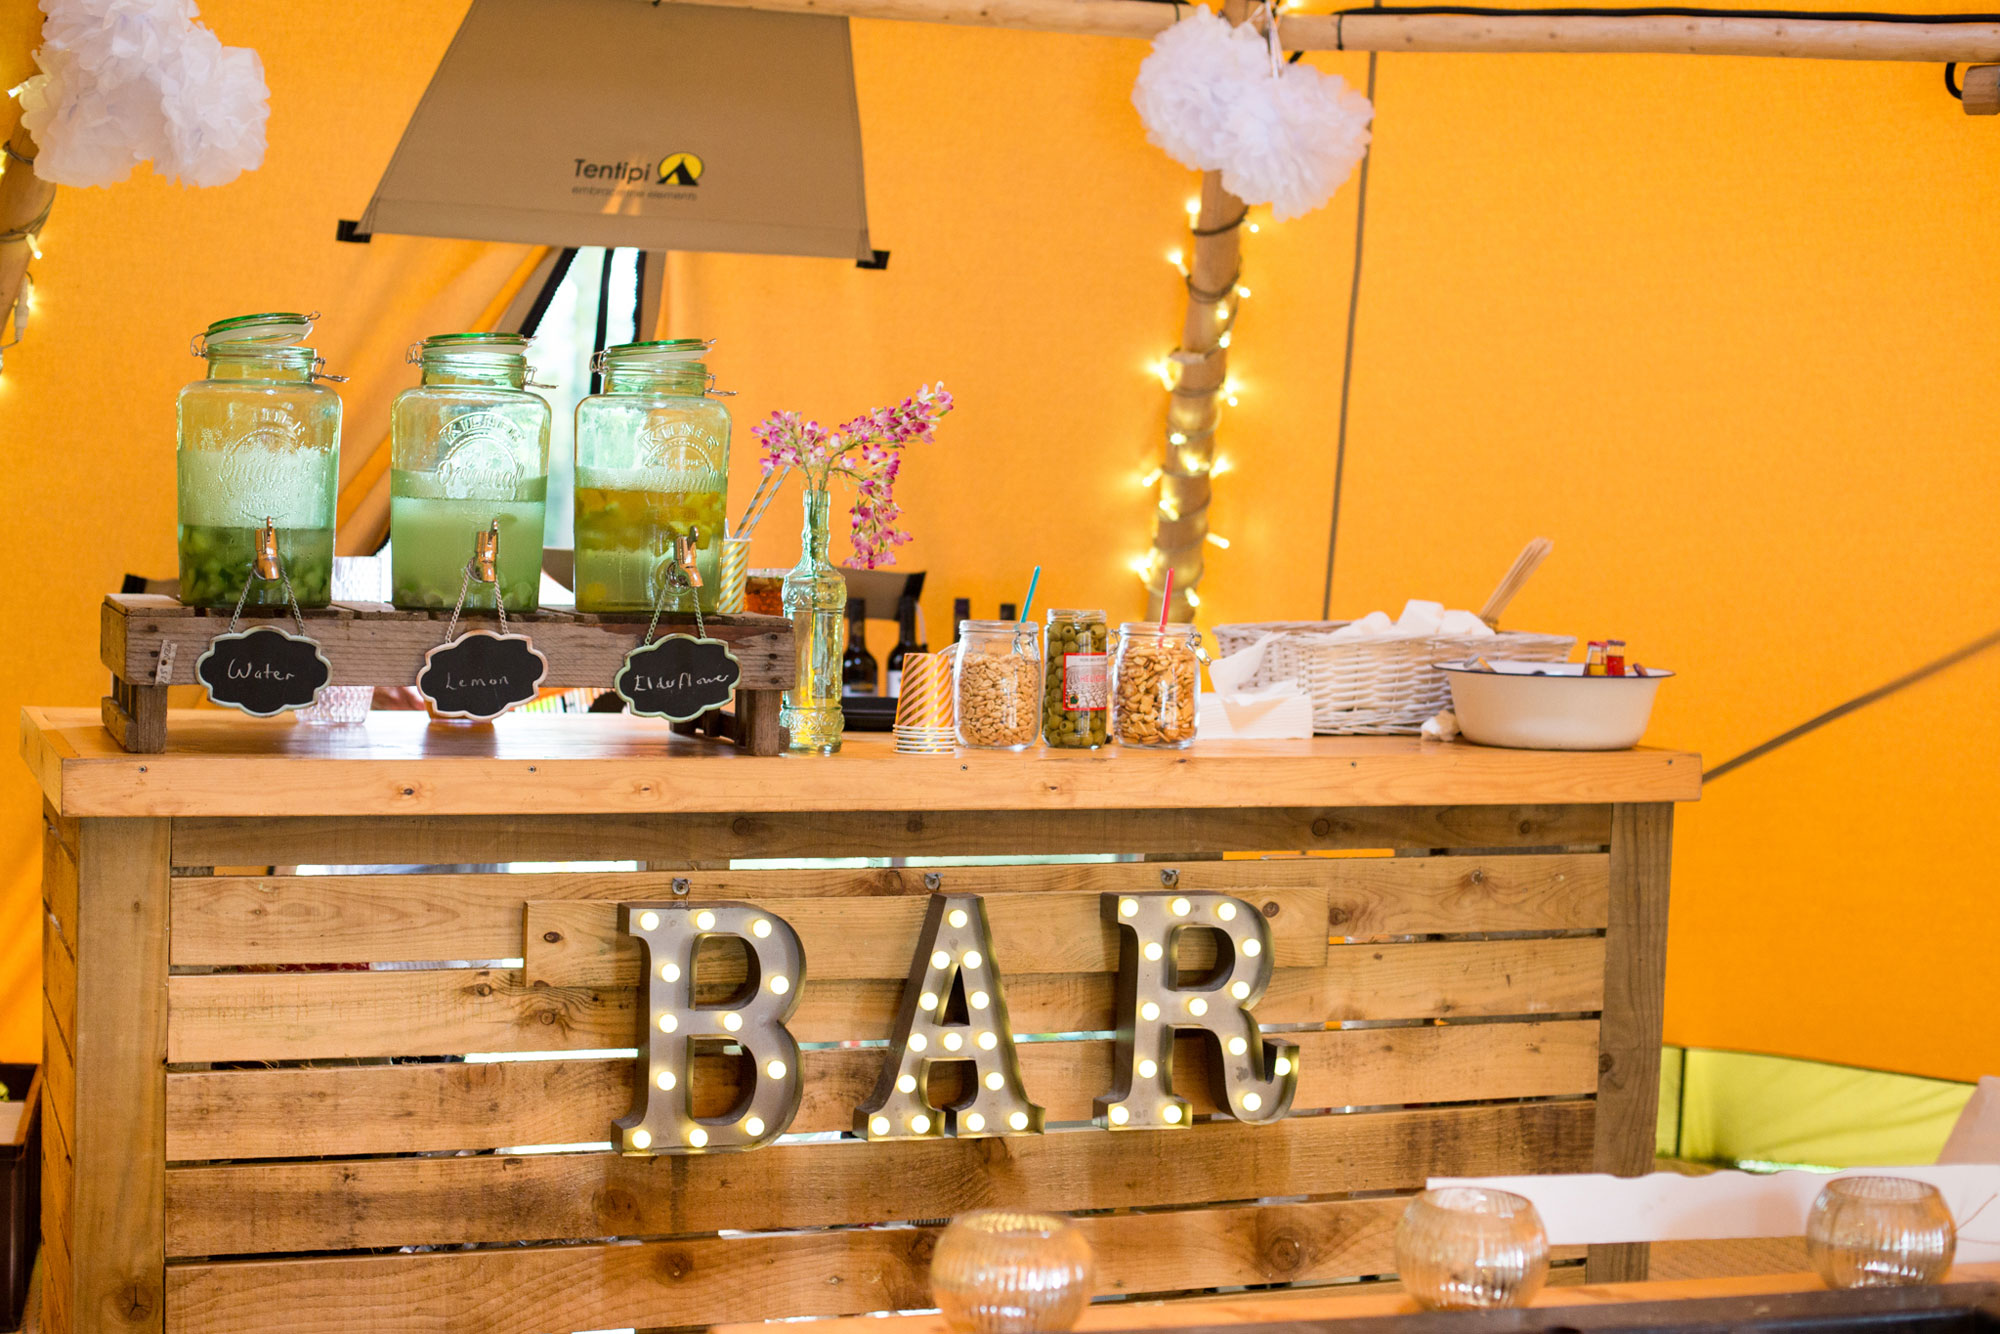 Setting Up Your Bar Novel Ideas For Your Tipi Bar Area Tentario Tipi Hire